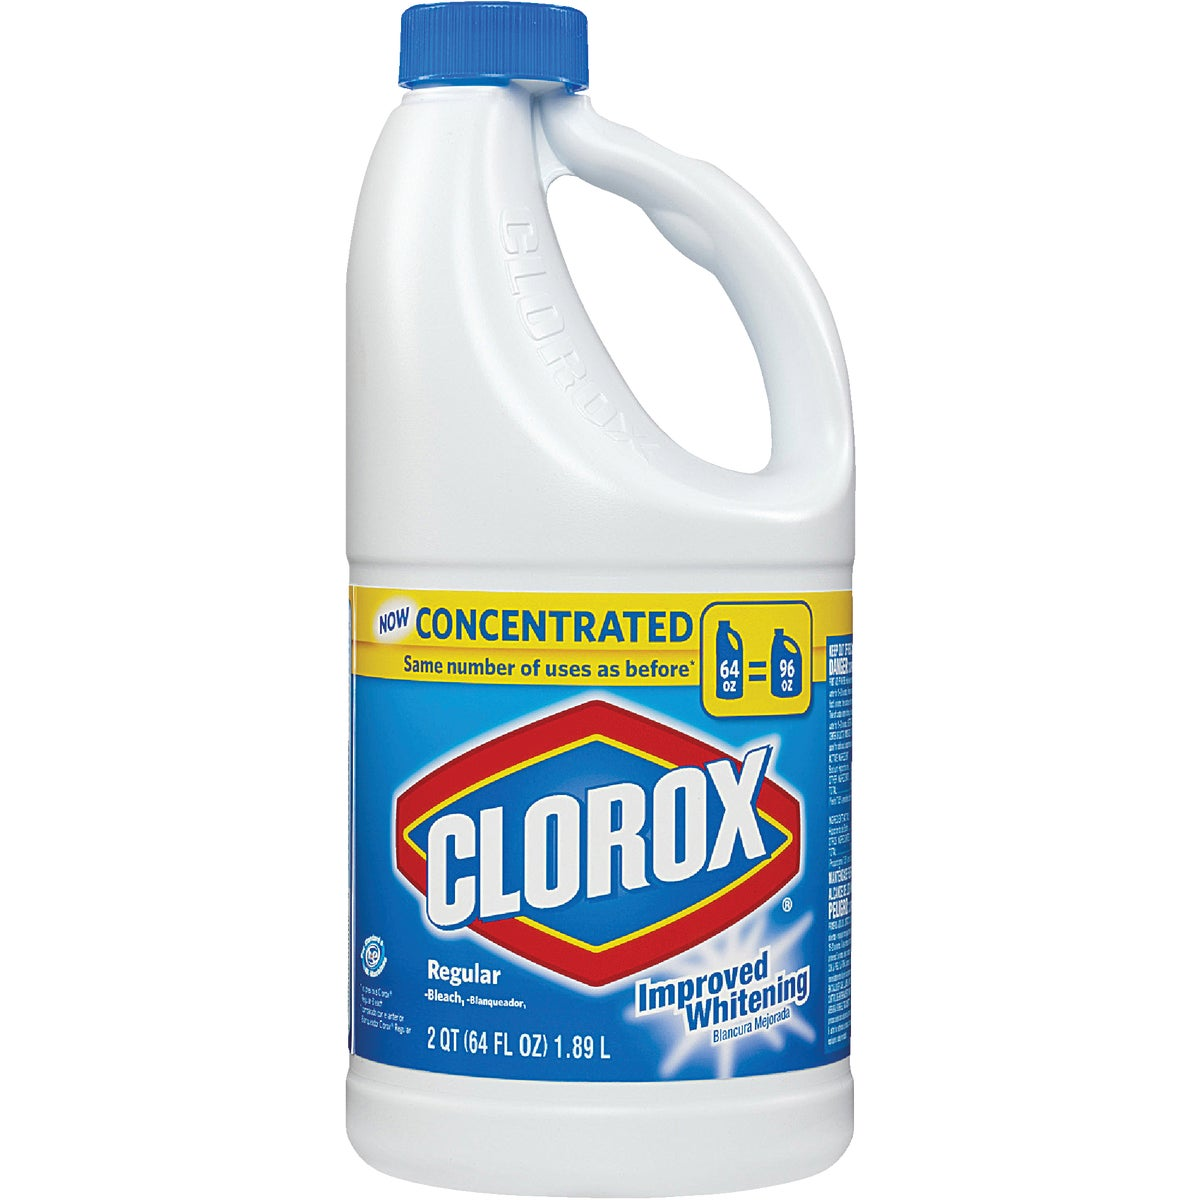 Clorox Regular Concentrated Liquid Bleach, 30769